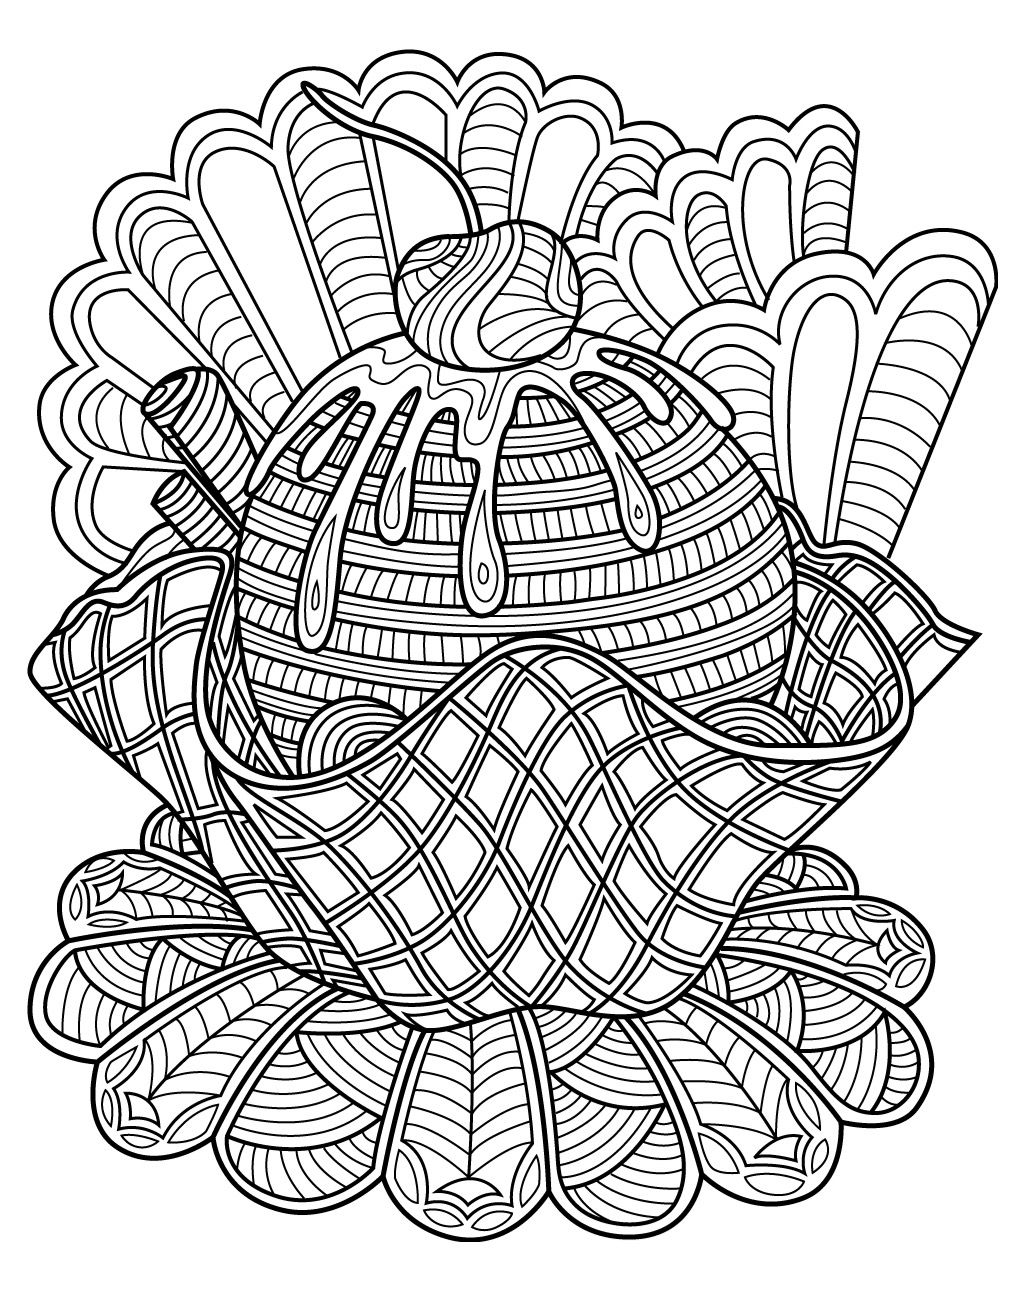 1019x1293 Sweets Coloring Page Colorish Free Coloring App For Adults